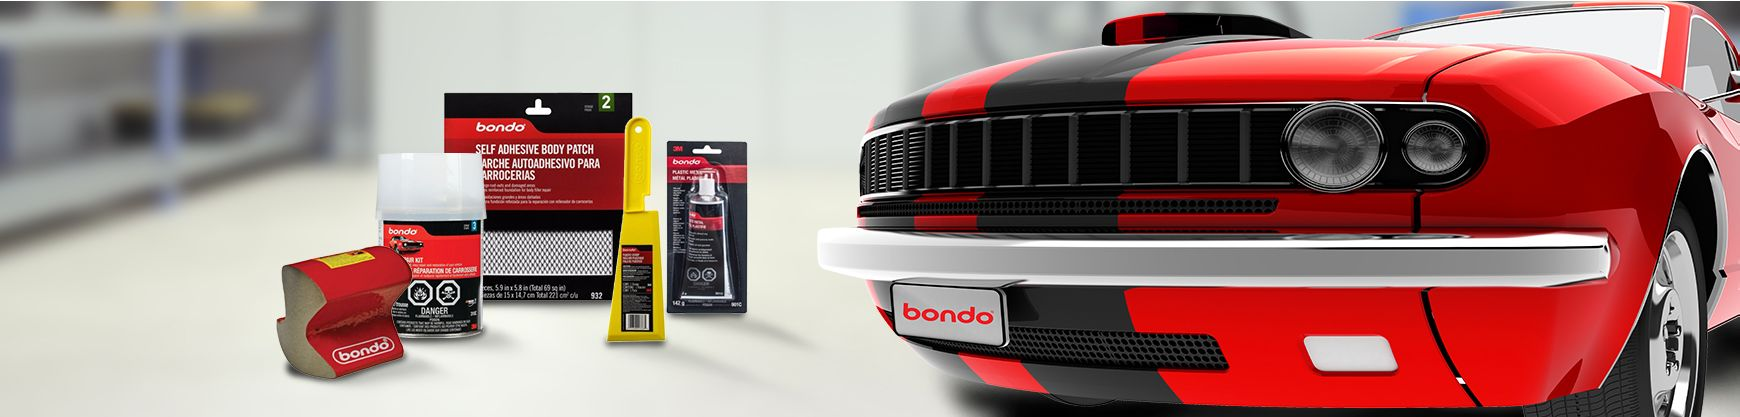 Bondo Fillers and Resins   Canadian Tire